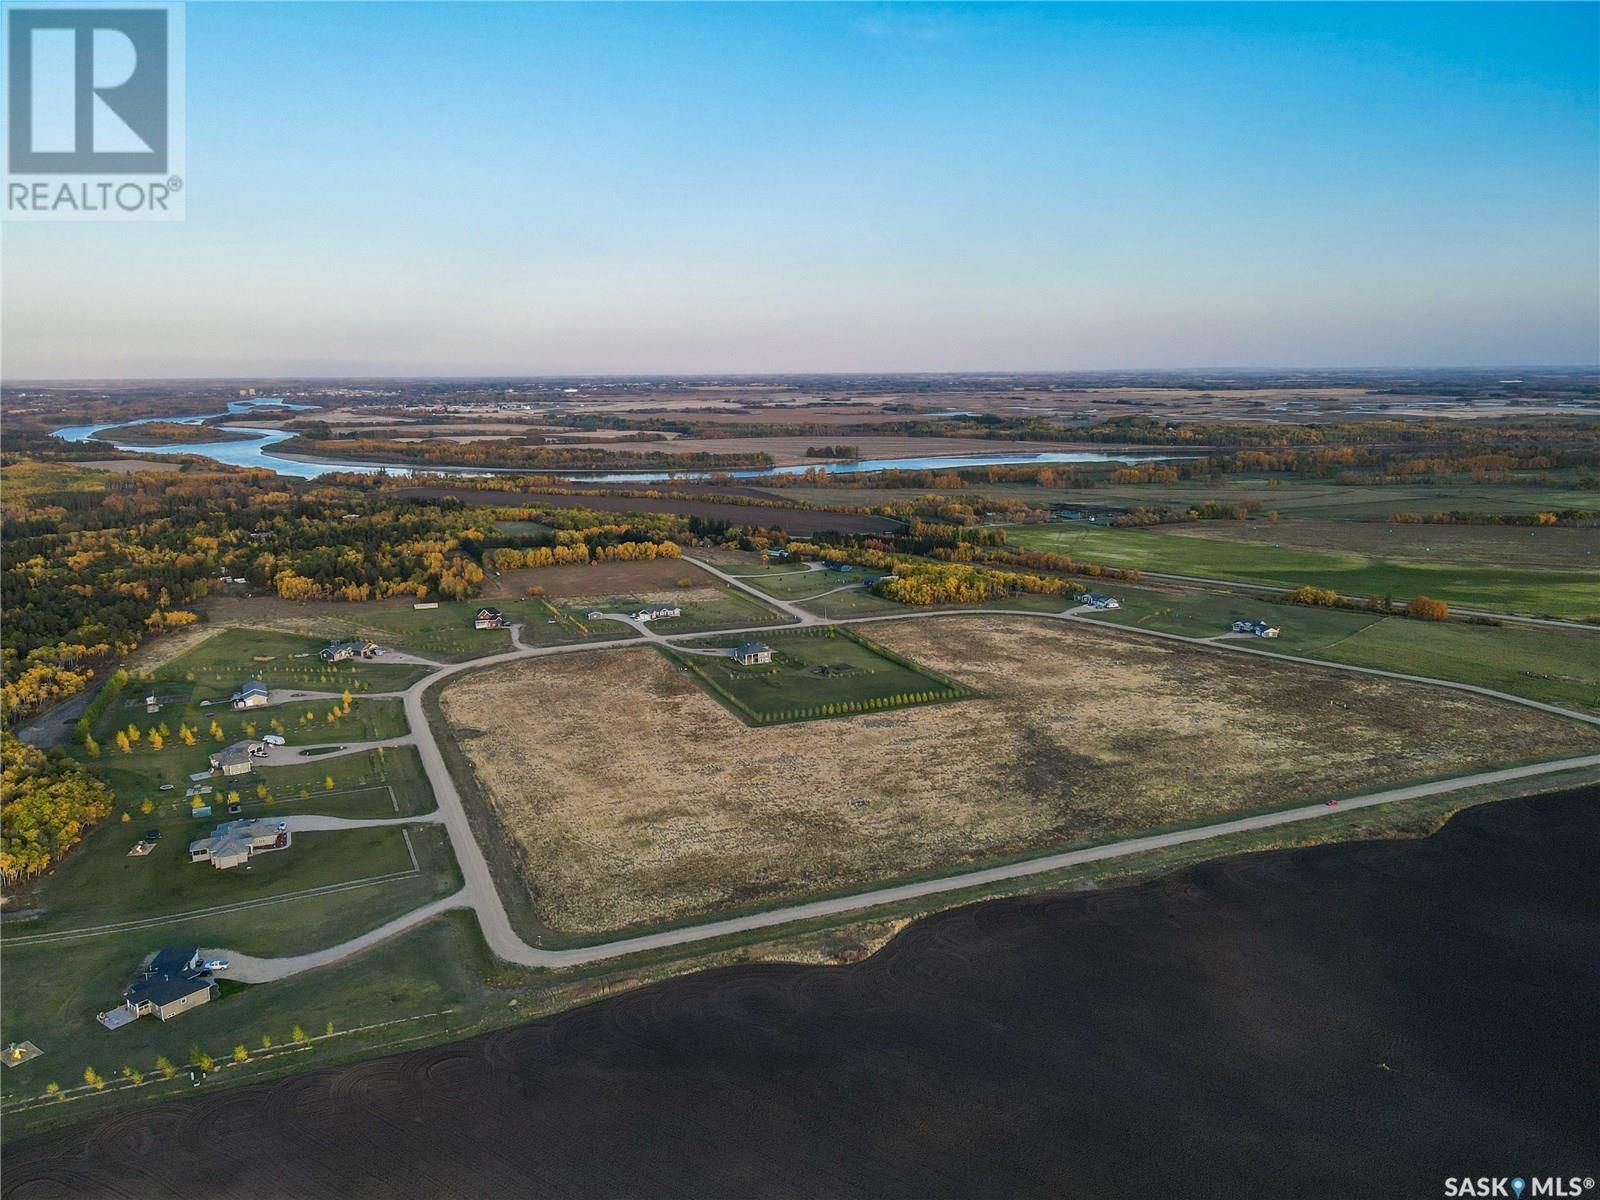 Main Photo: Hold Fast Estates Lot 5 Block 2 in Buckland Rm No. 491: Vacant Land for sale : MLS®# SK833998